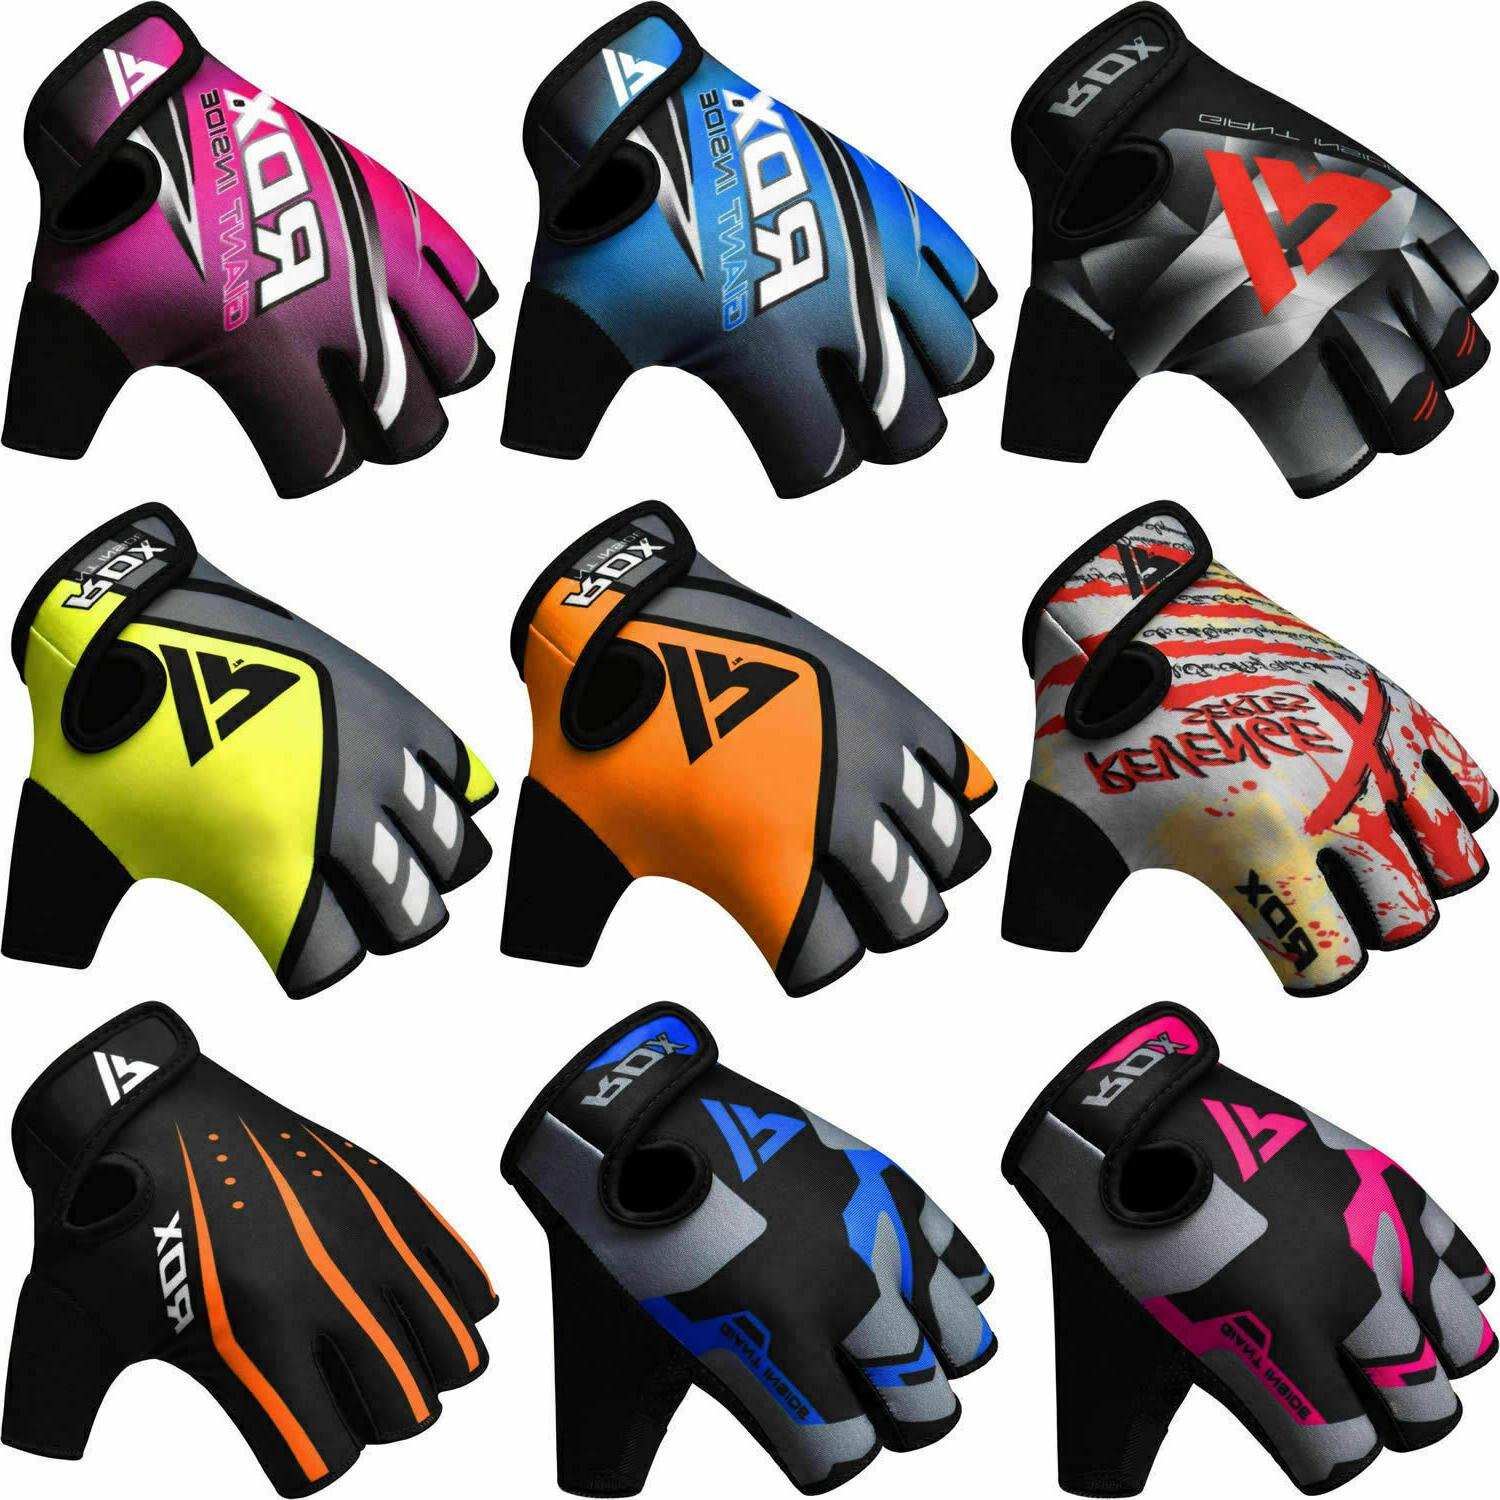 gym weight lifting workout fitness gloves half